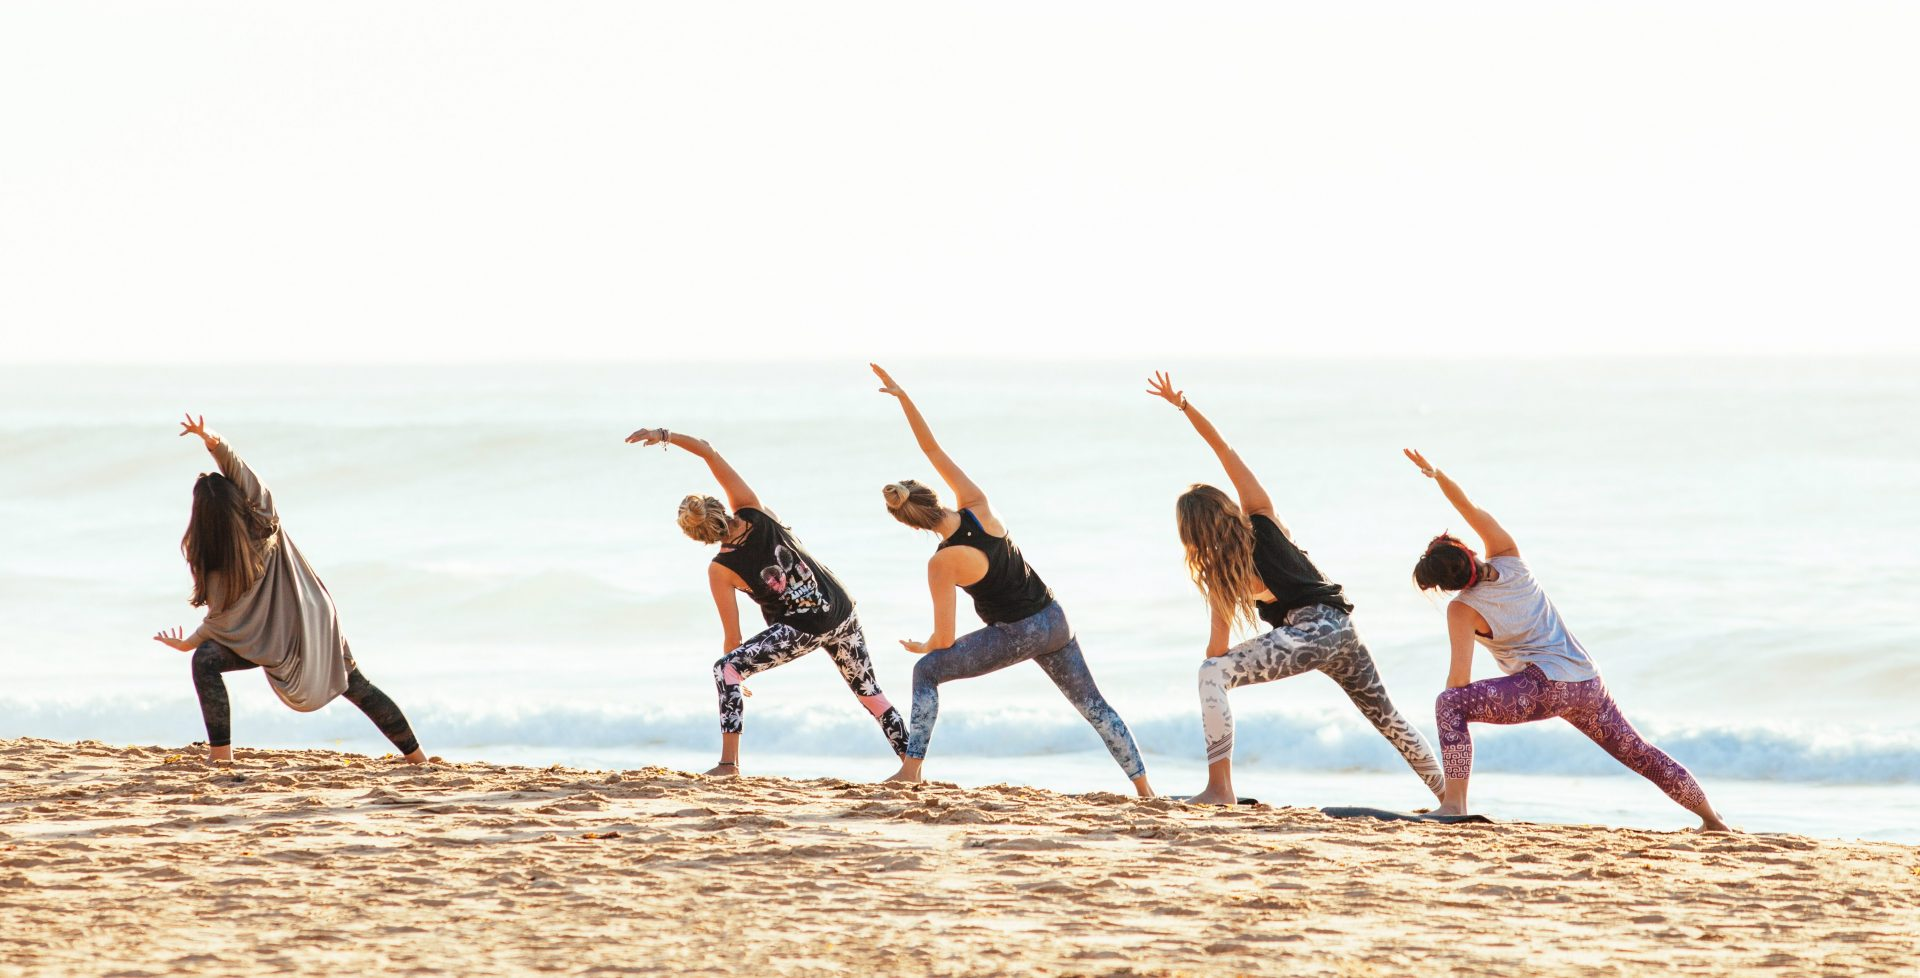 Group Yoga On Beach